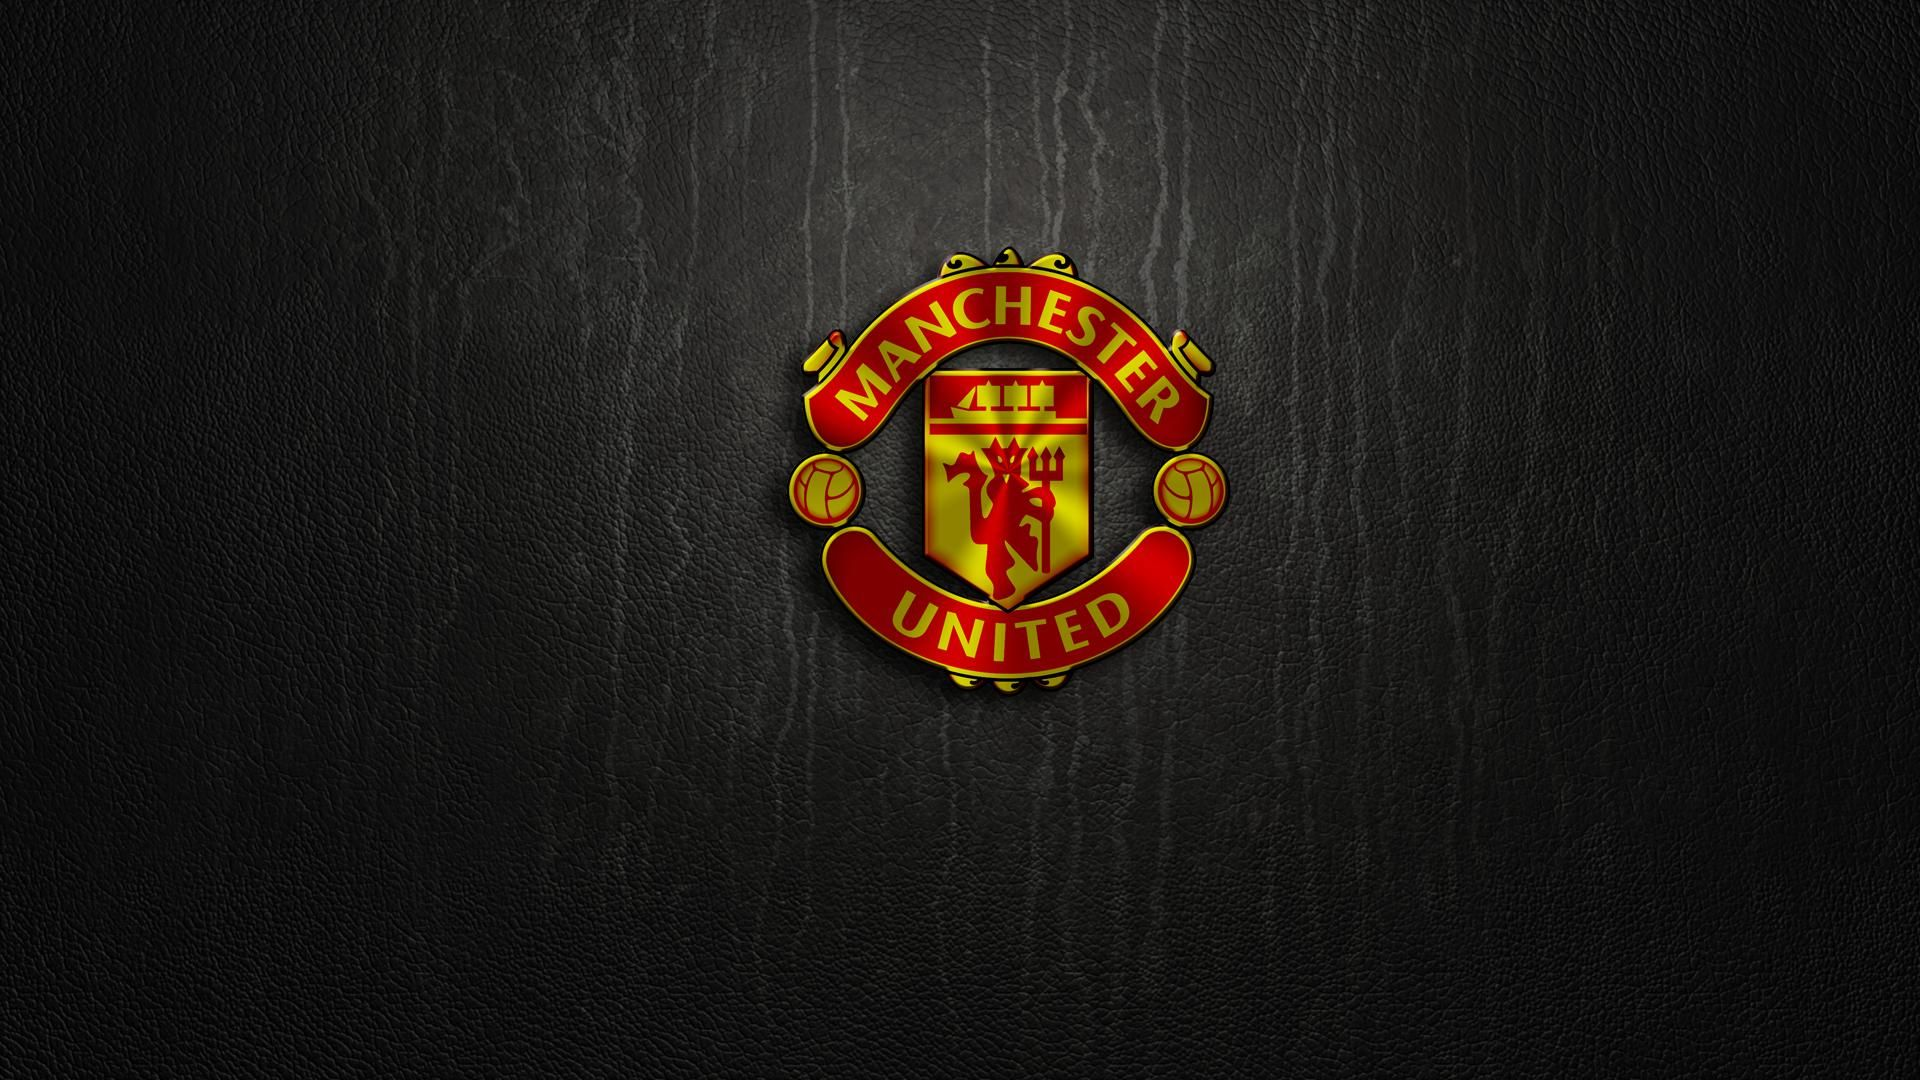 Manchester United Logo High Def Hd Wallpaper Manchester United Wallpaper Manchester United Logo Manchester Logo